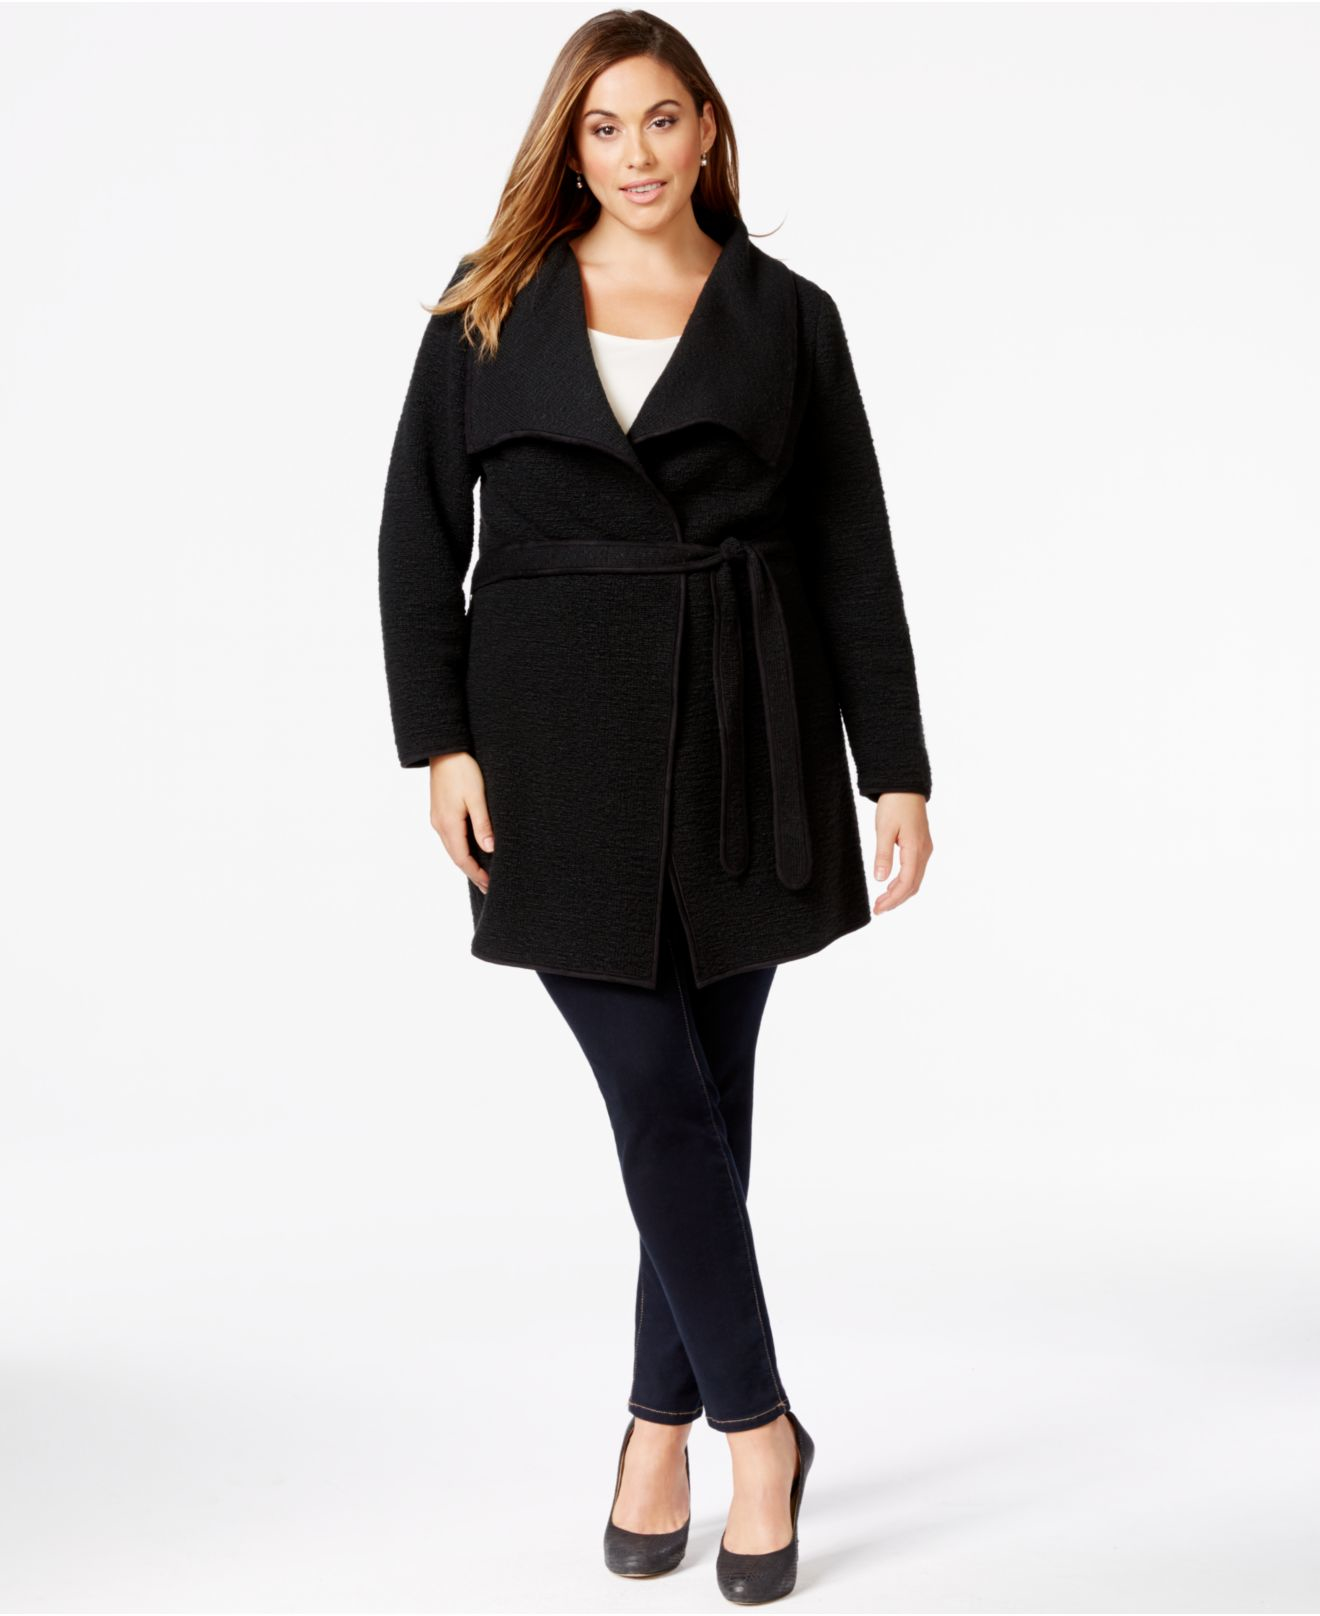 2654261a33f Lyst - Calvin Klein Plus Size Belted Wrap Sweater-jacket in Black